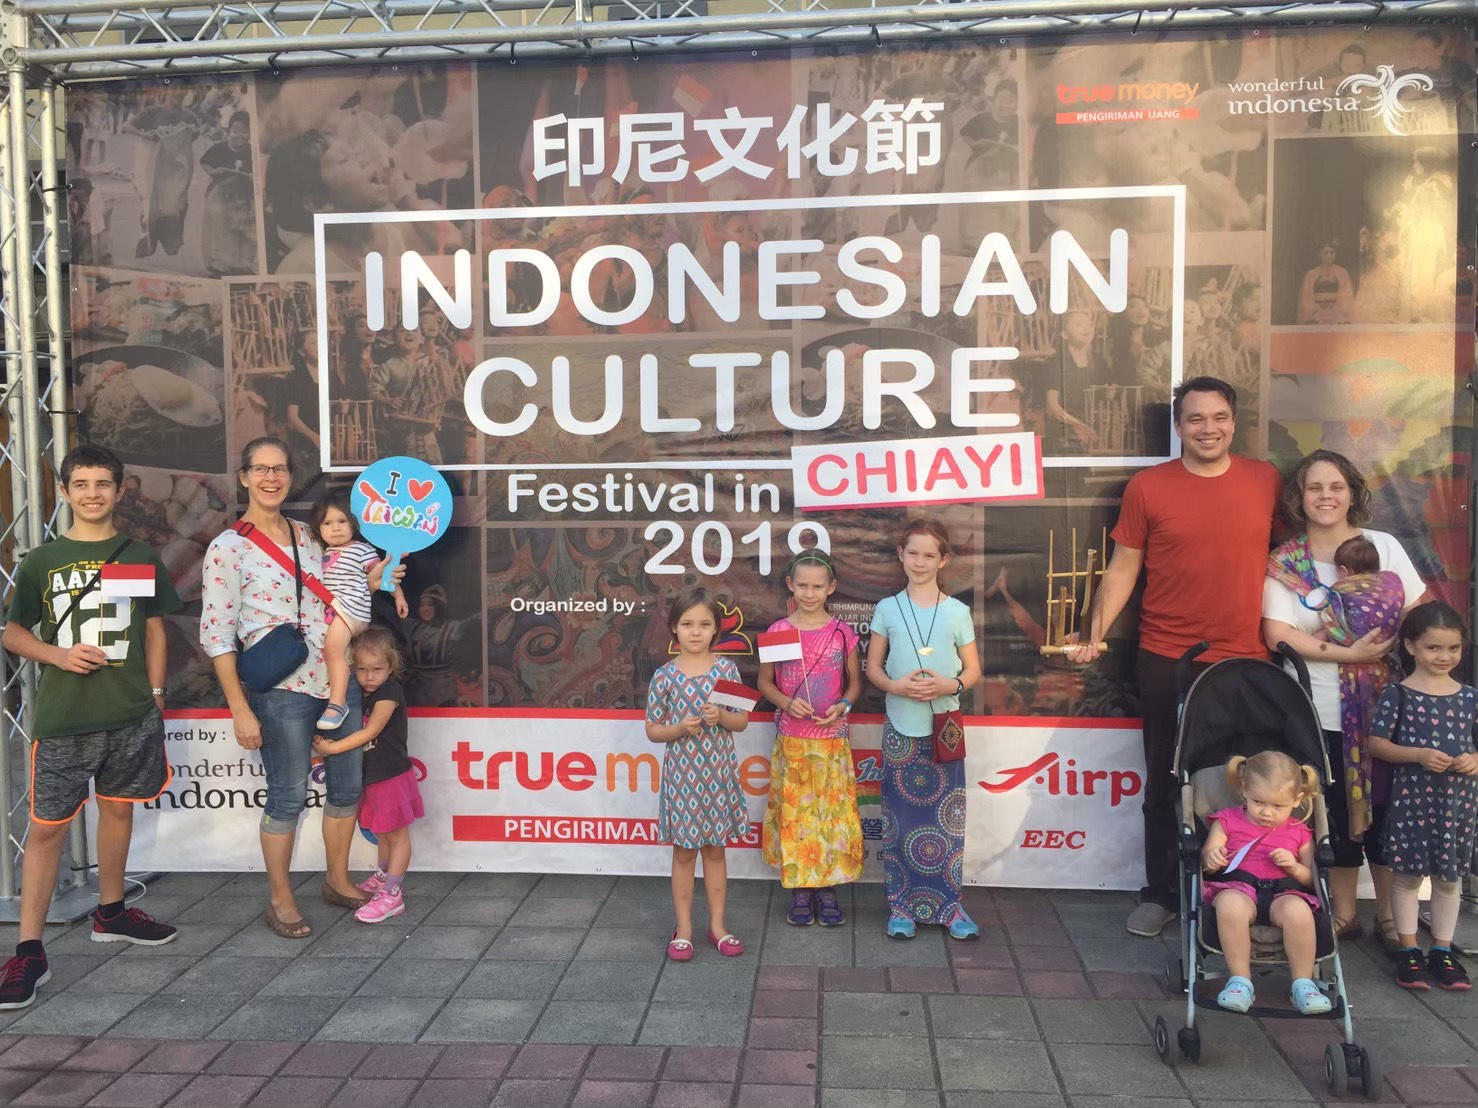 The attendees of Indonesian Culture Festival in Chiayi 2019. Source: ICF Chiayi.